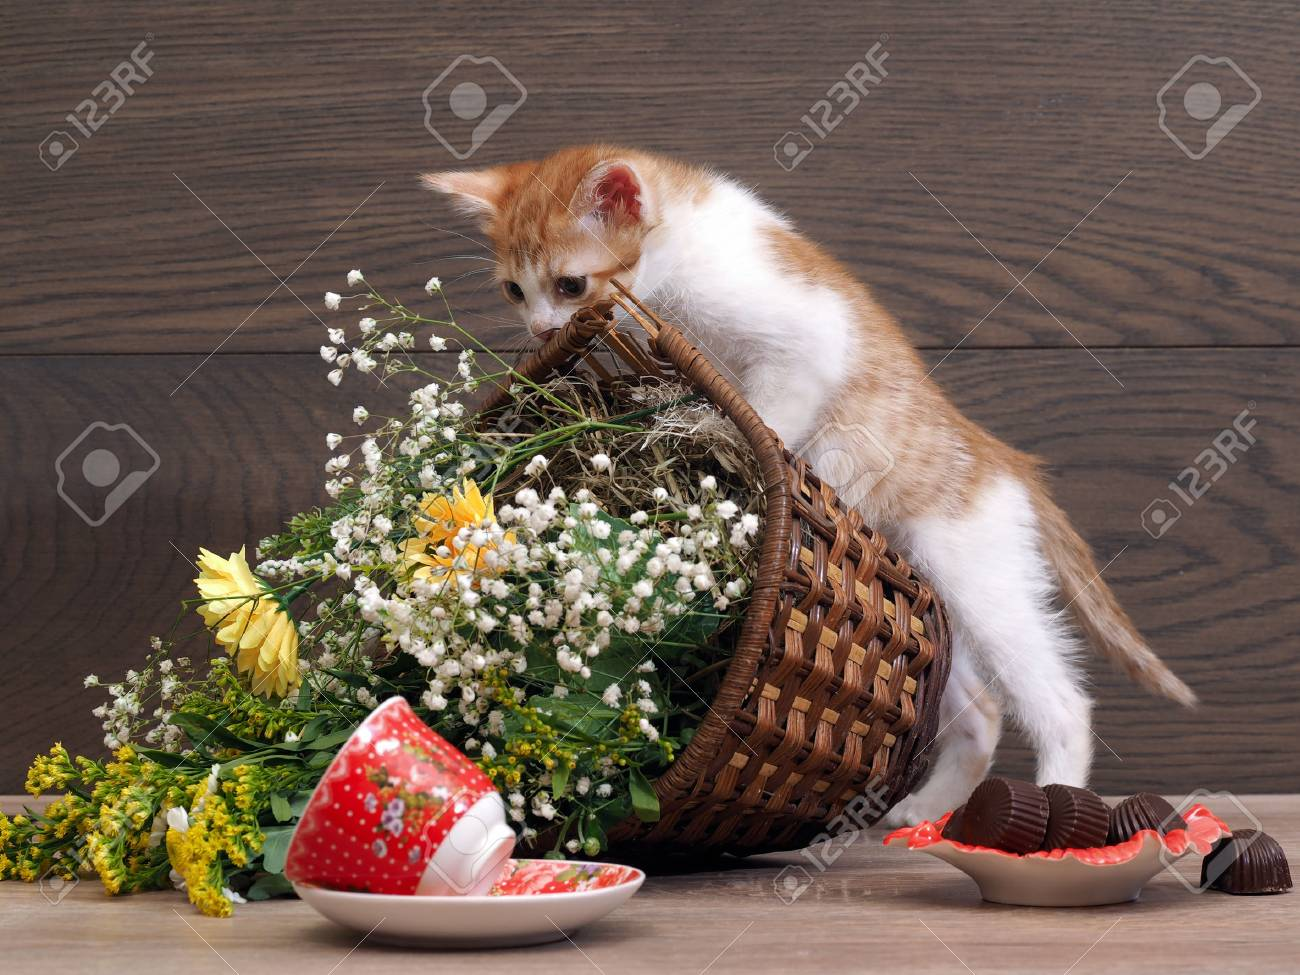 Kitten is playing - drops her basket of flowers. The inverted teacup. Cat made a mess on the table - 67333291